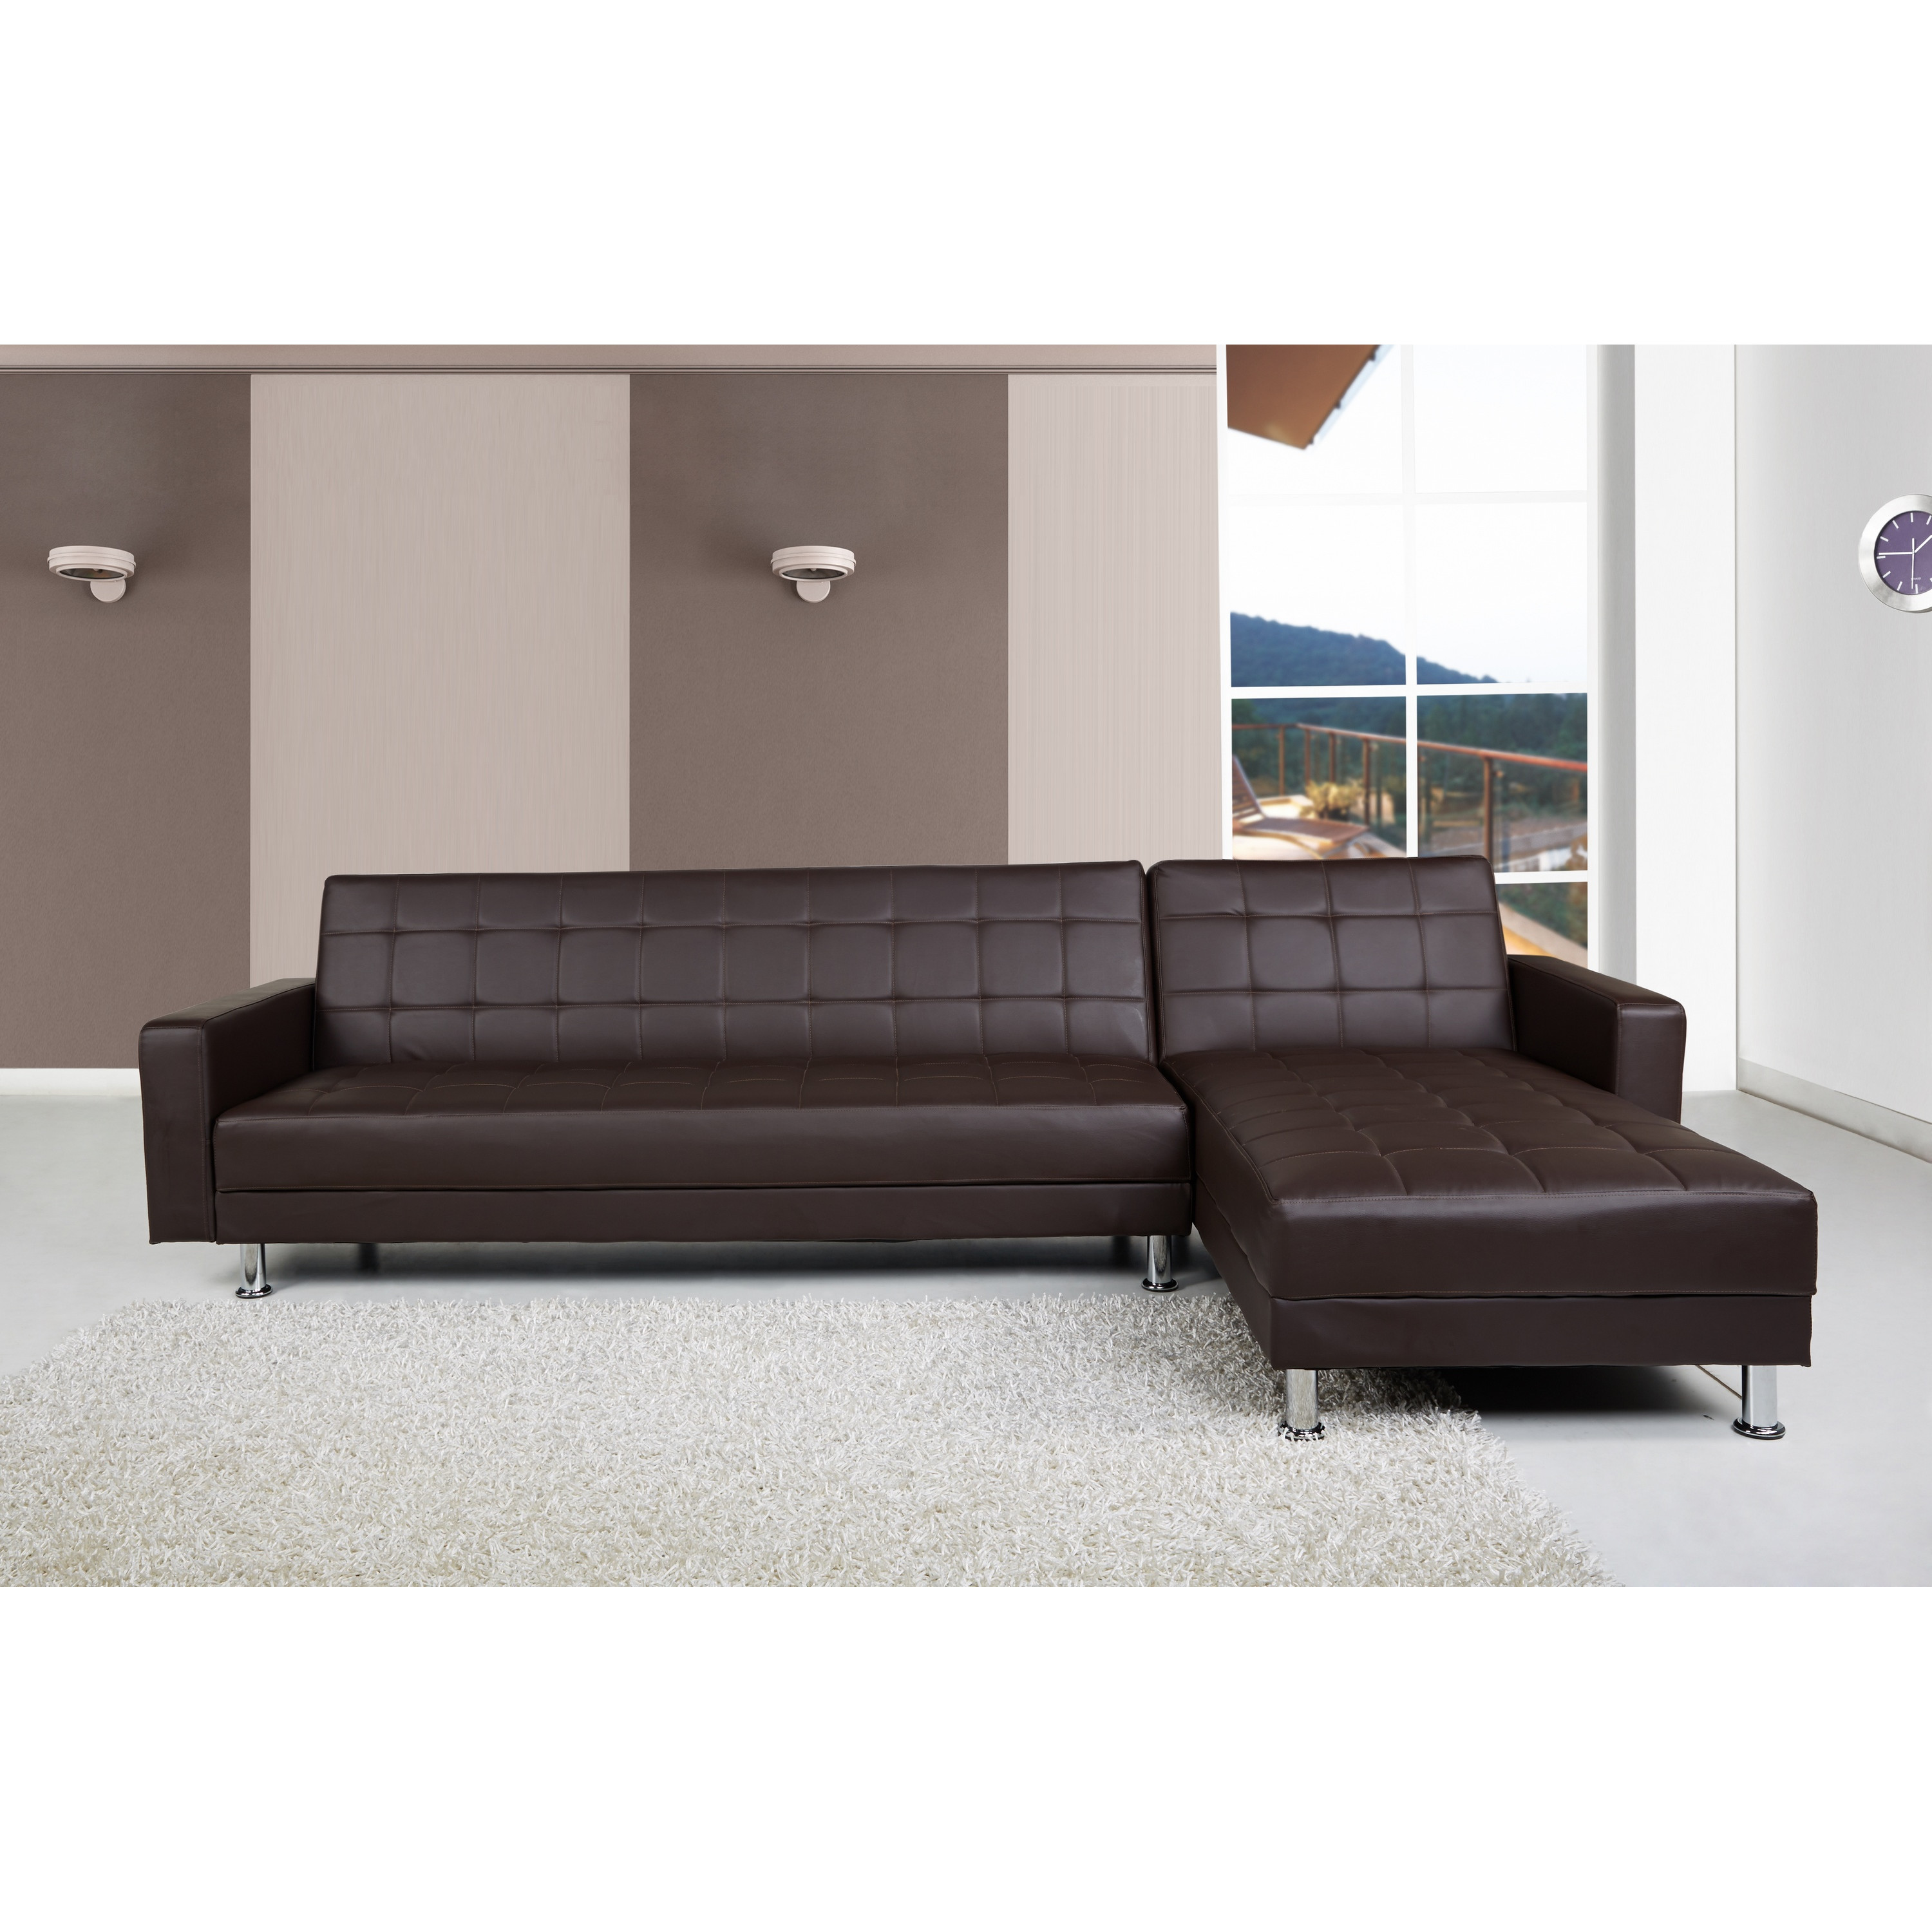 Photo of Spencer brown faux leather corner sofa bed with interchanging chaise